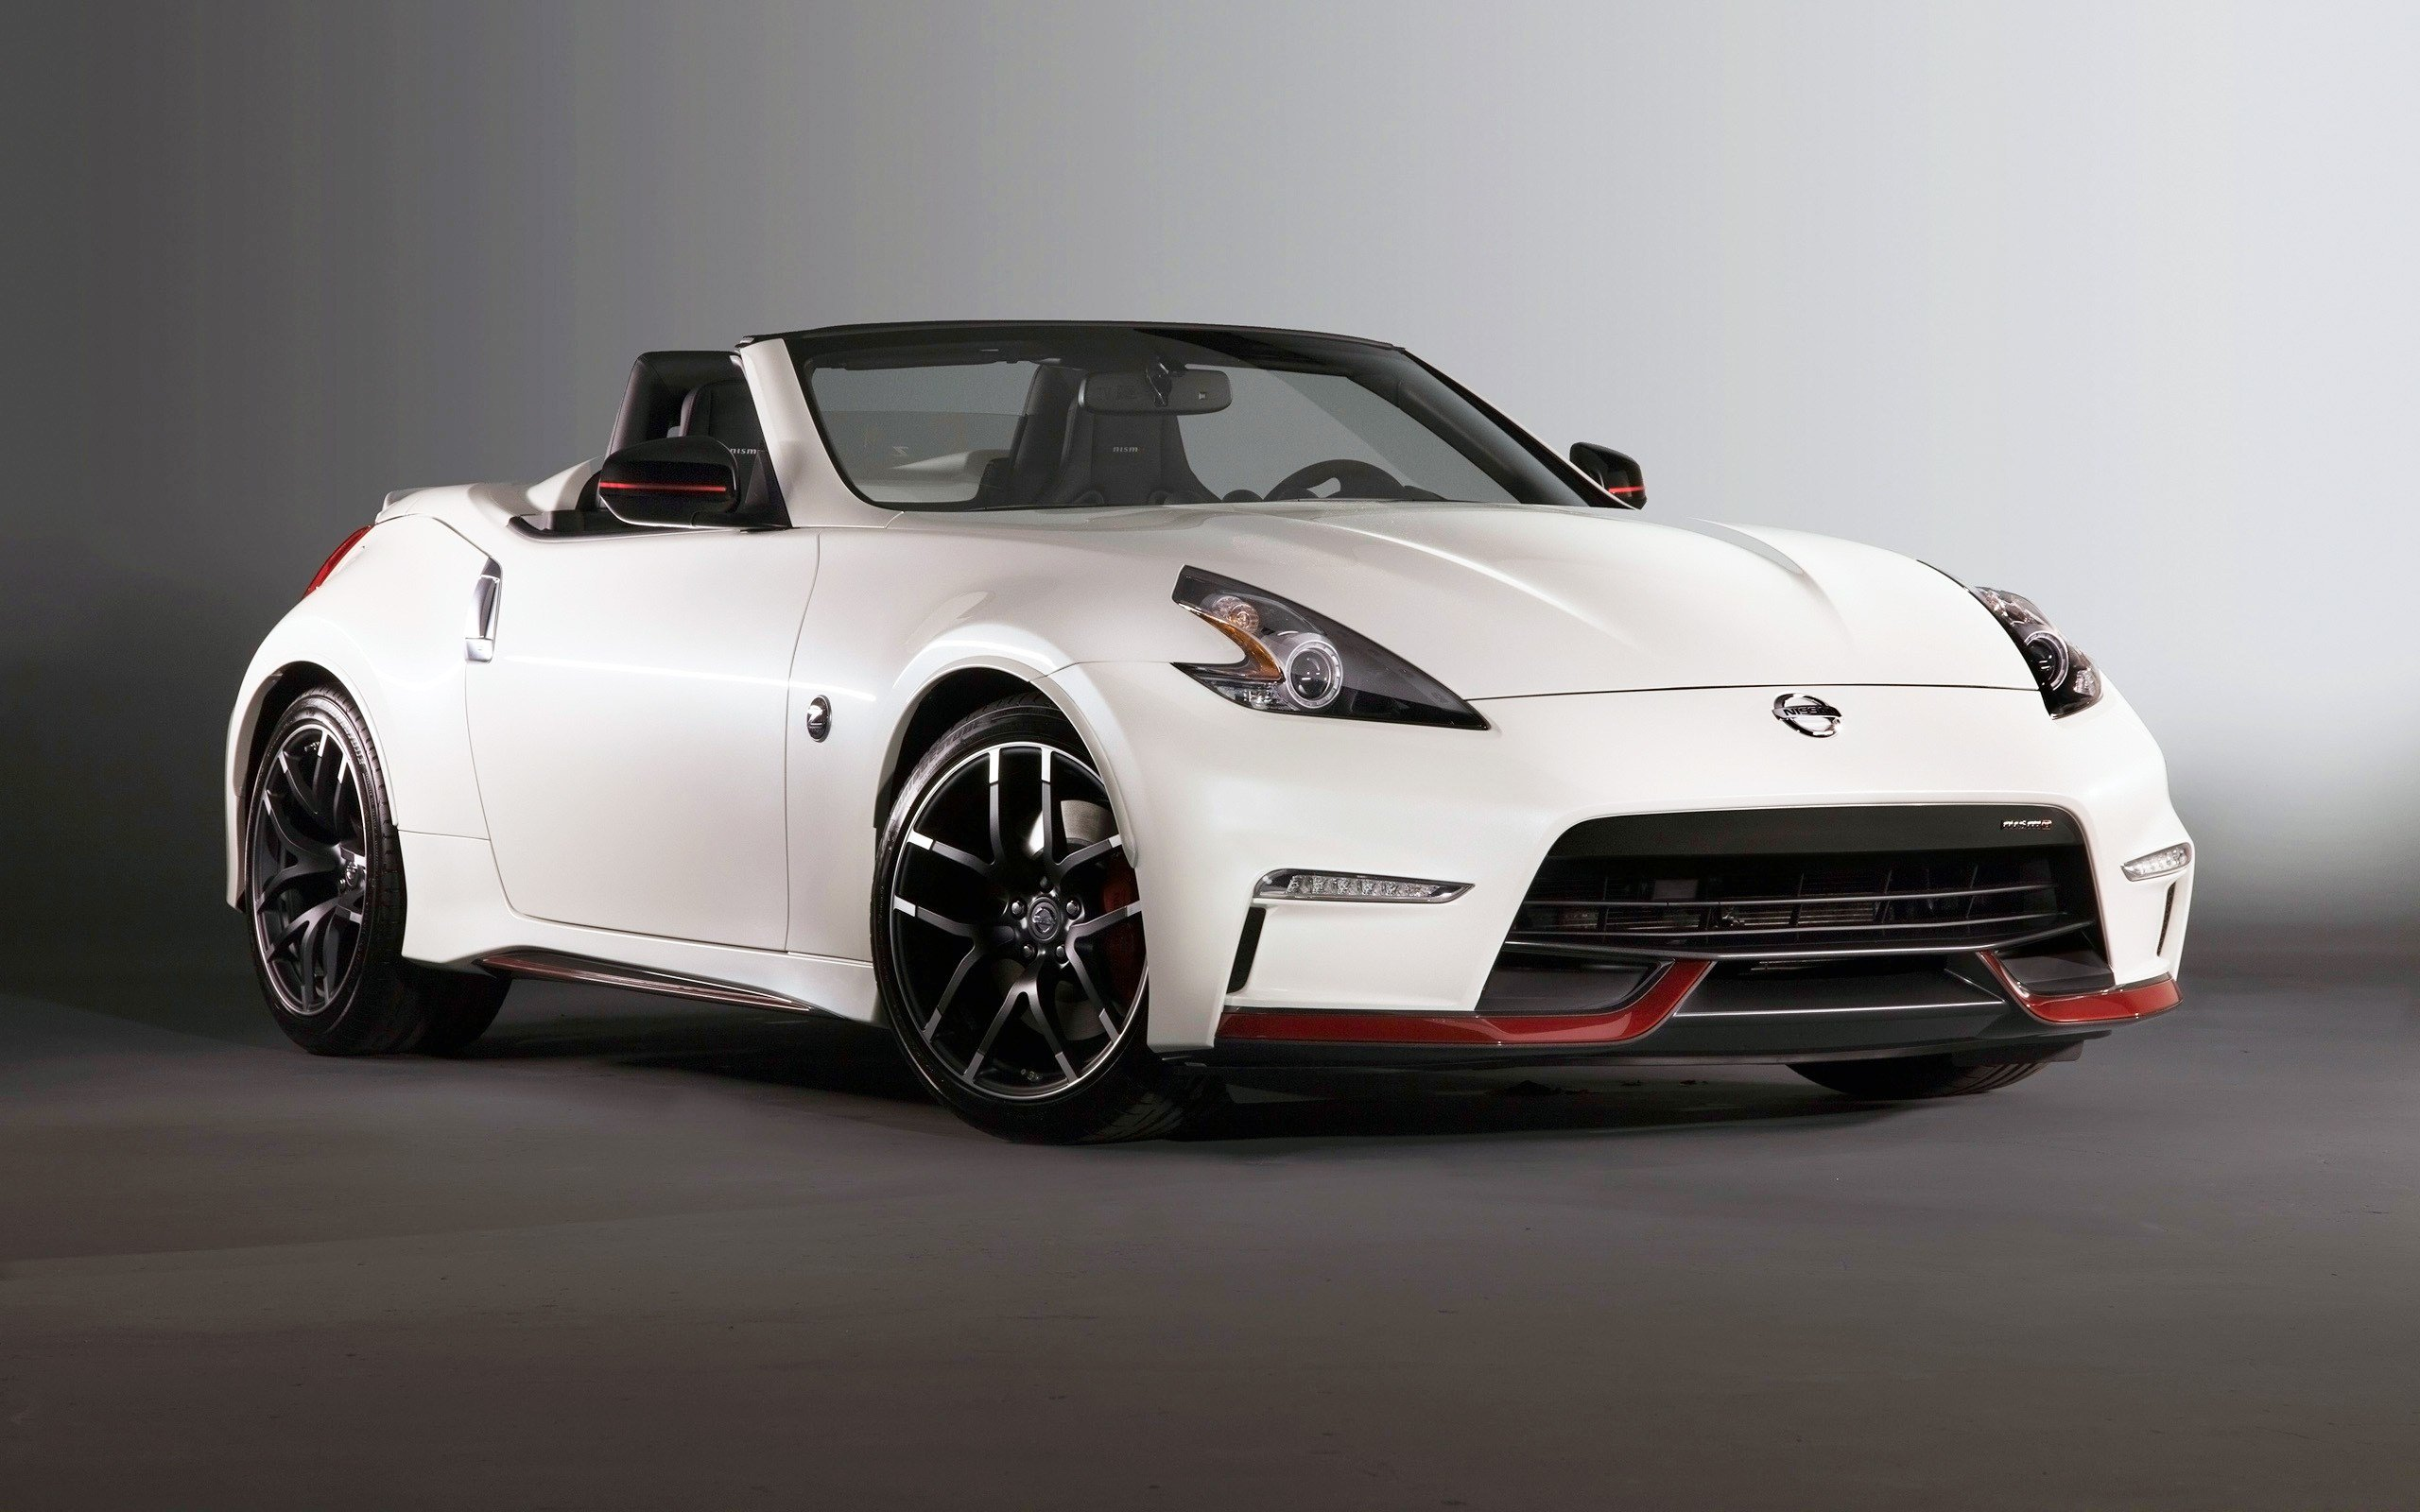 Latest 2015 Nissan 370Z Nismo Roadster Concept Wallpaper Hd Car Free Download